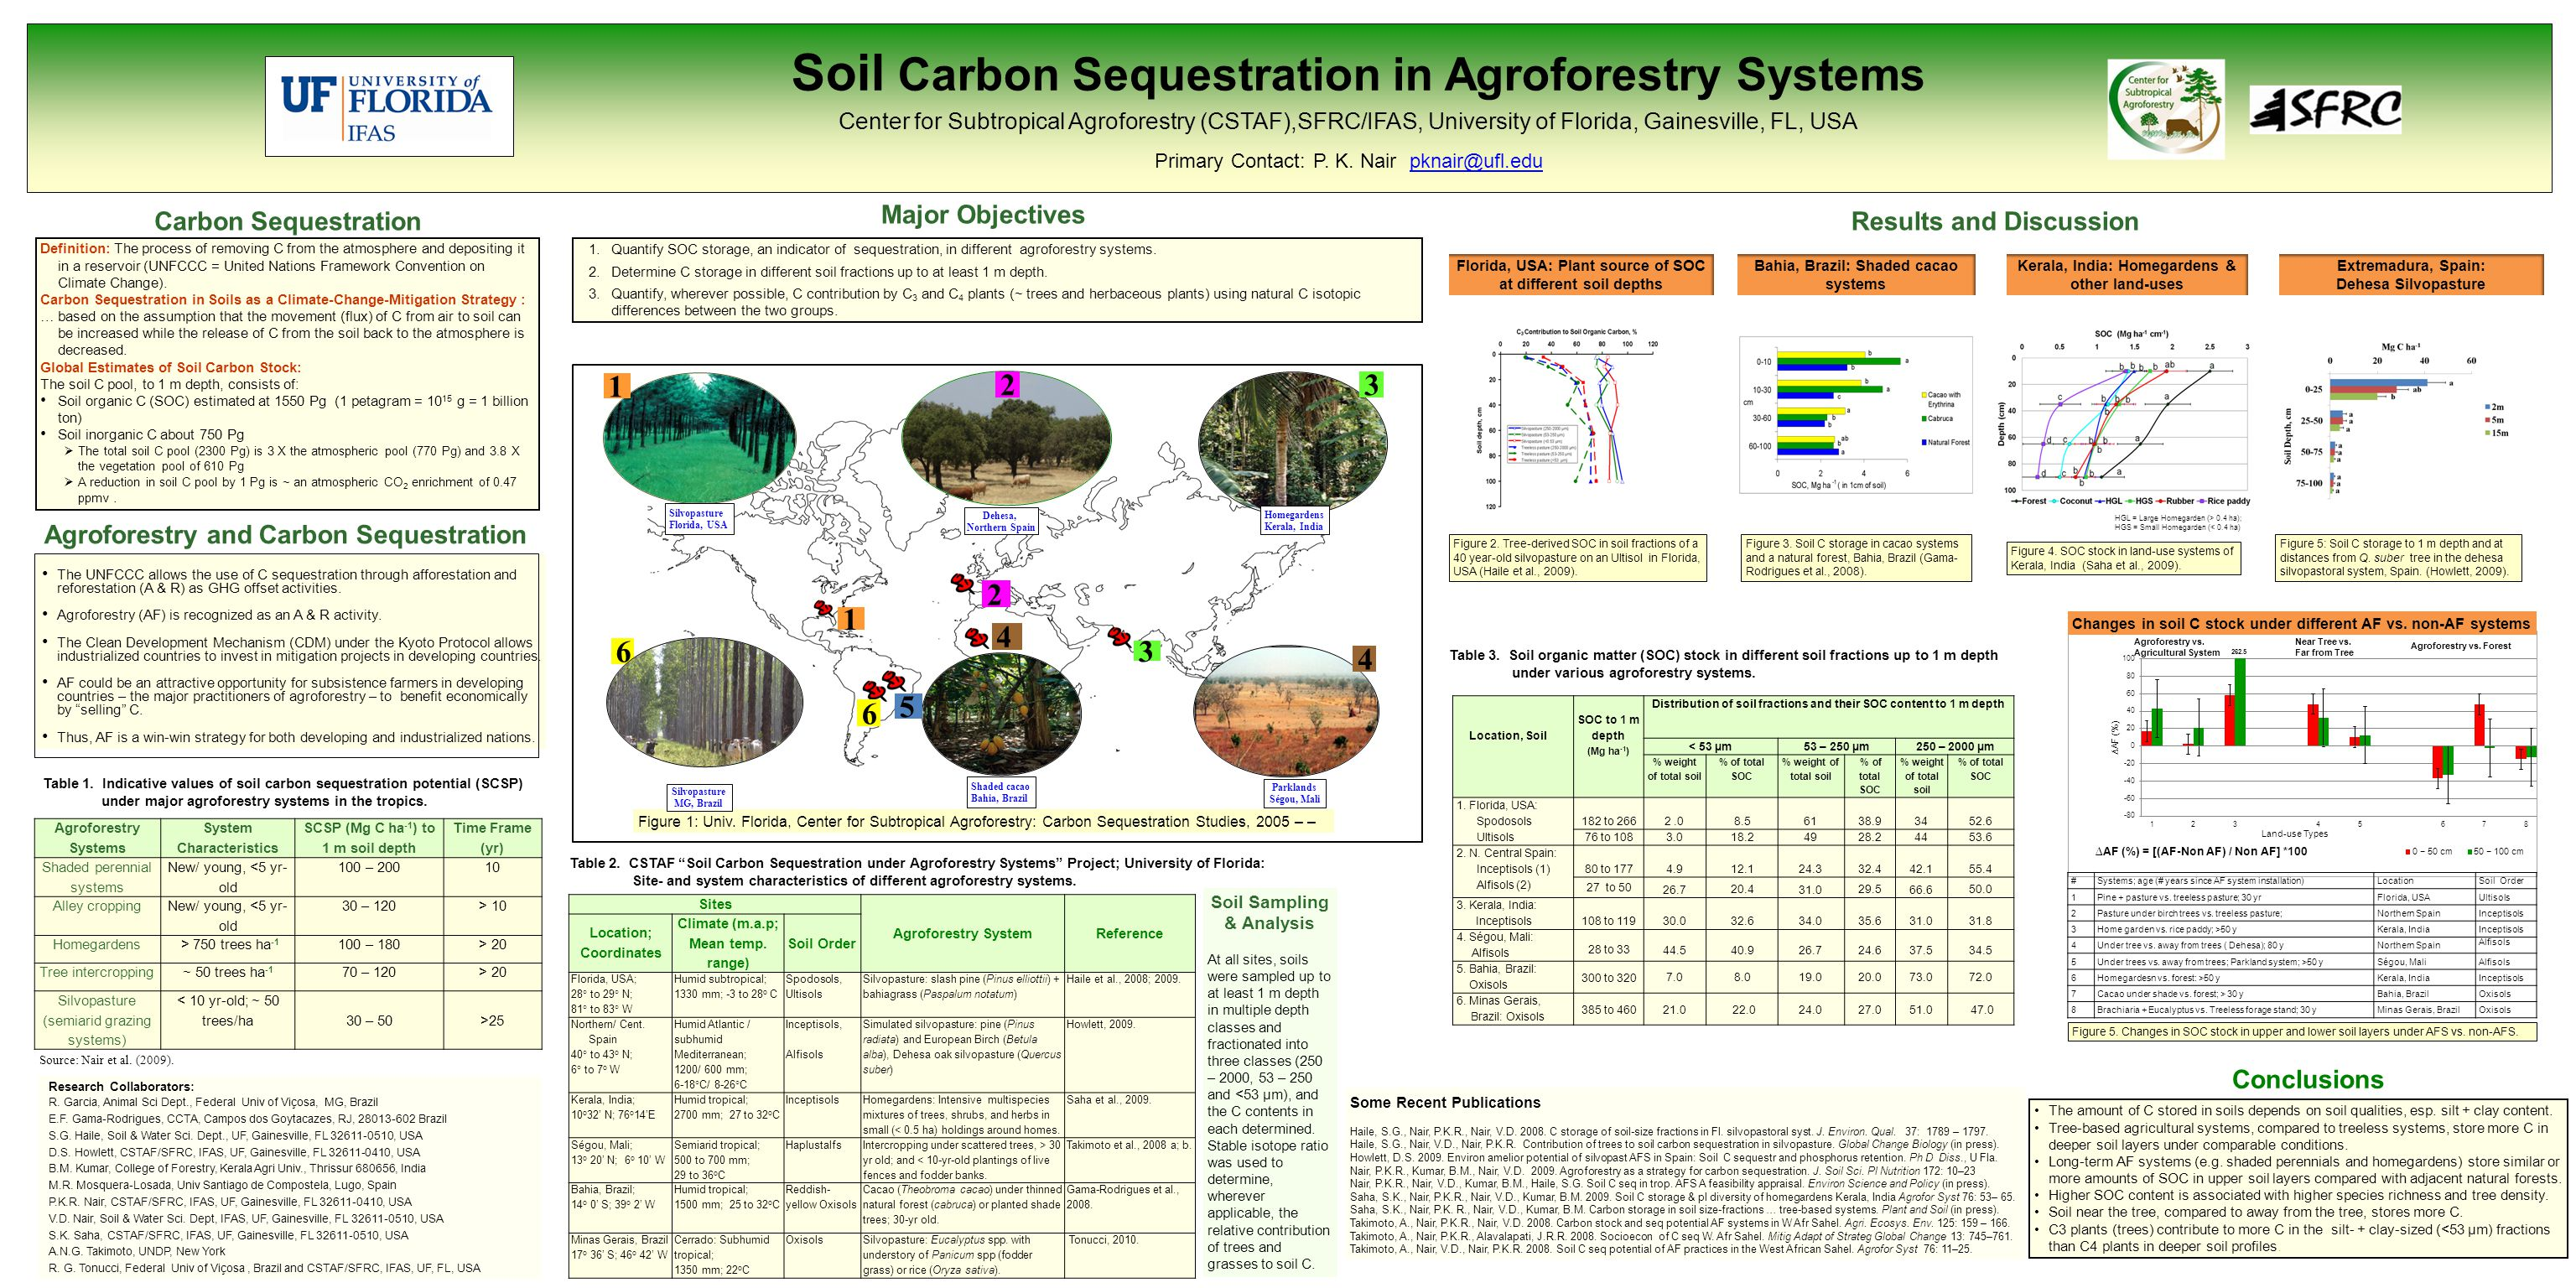 Soil Carbon Sequestration in Agroforestry Systems Center for Subtropical Agroforestry (CSTAF),SFRC/IFAS, University of Florida, Gainesville, FL, USA P